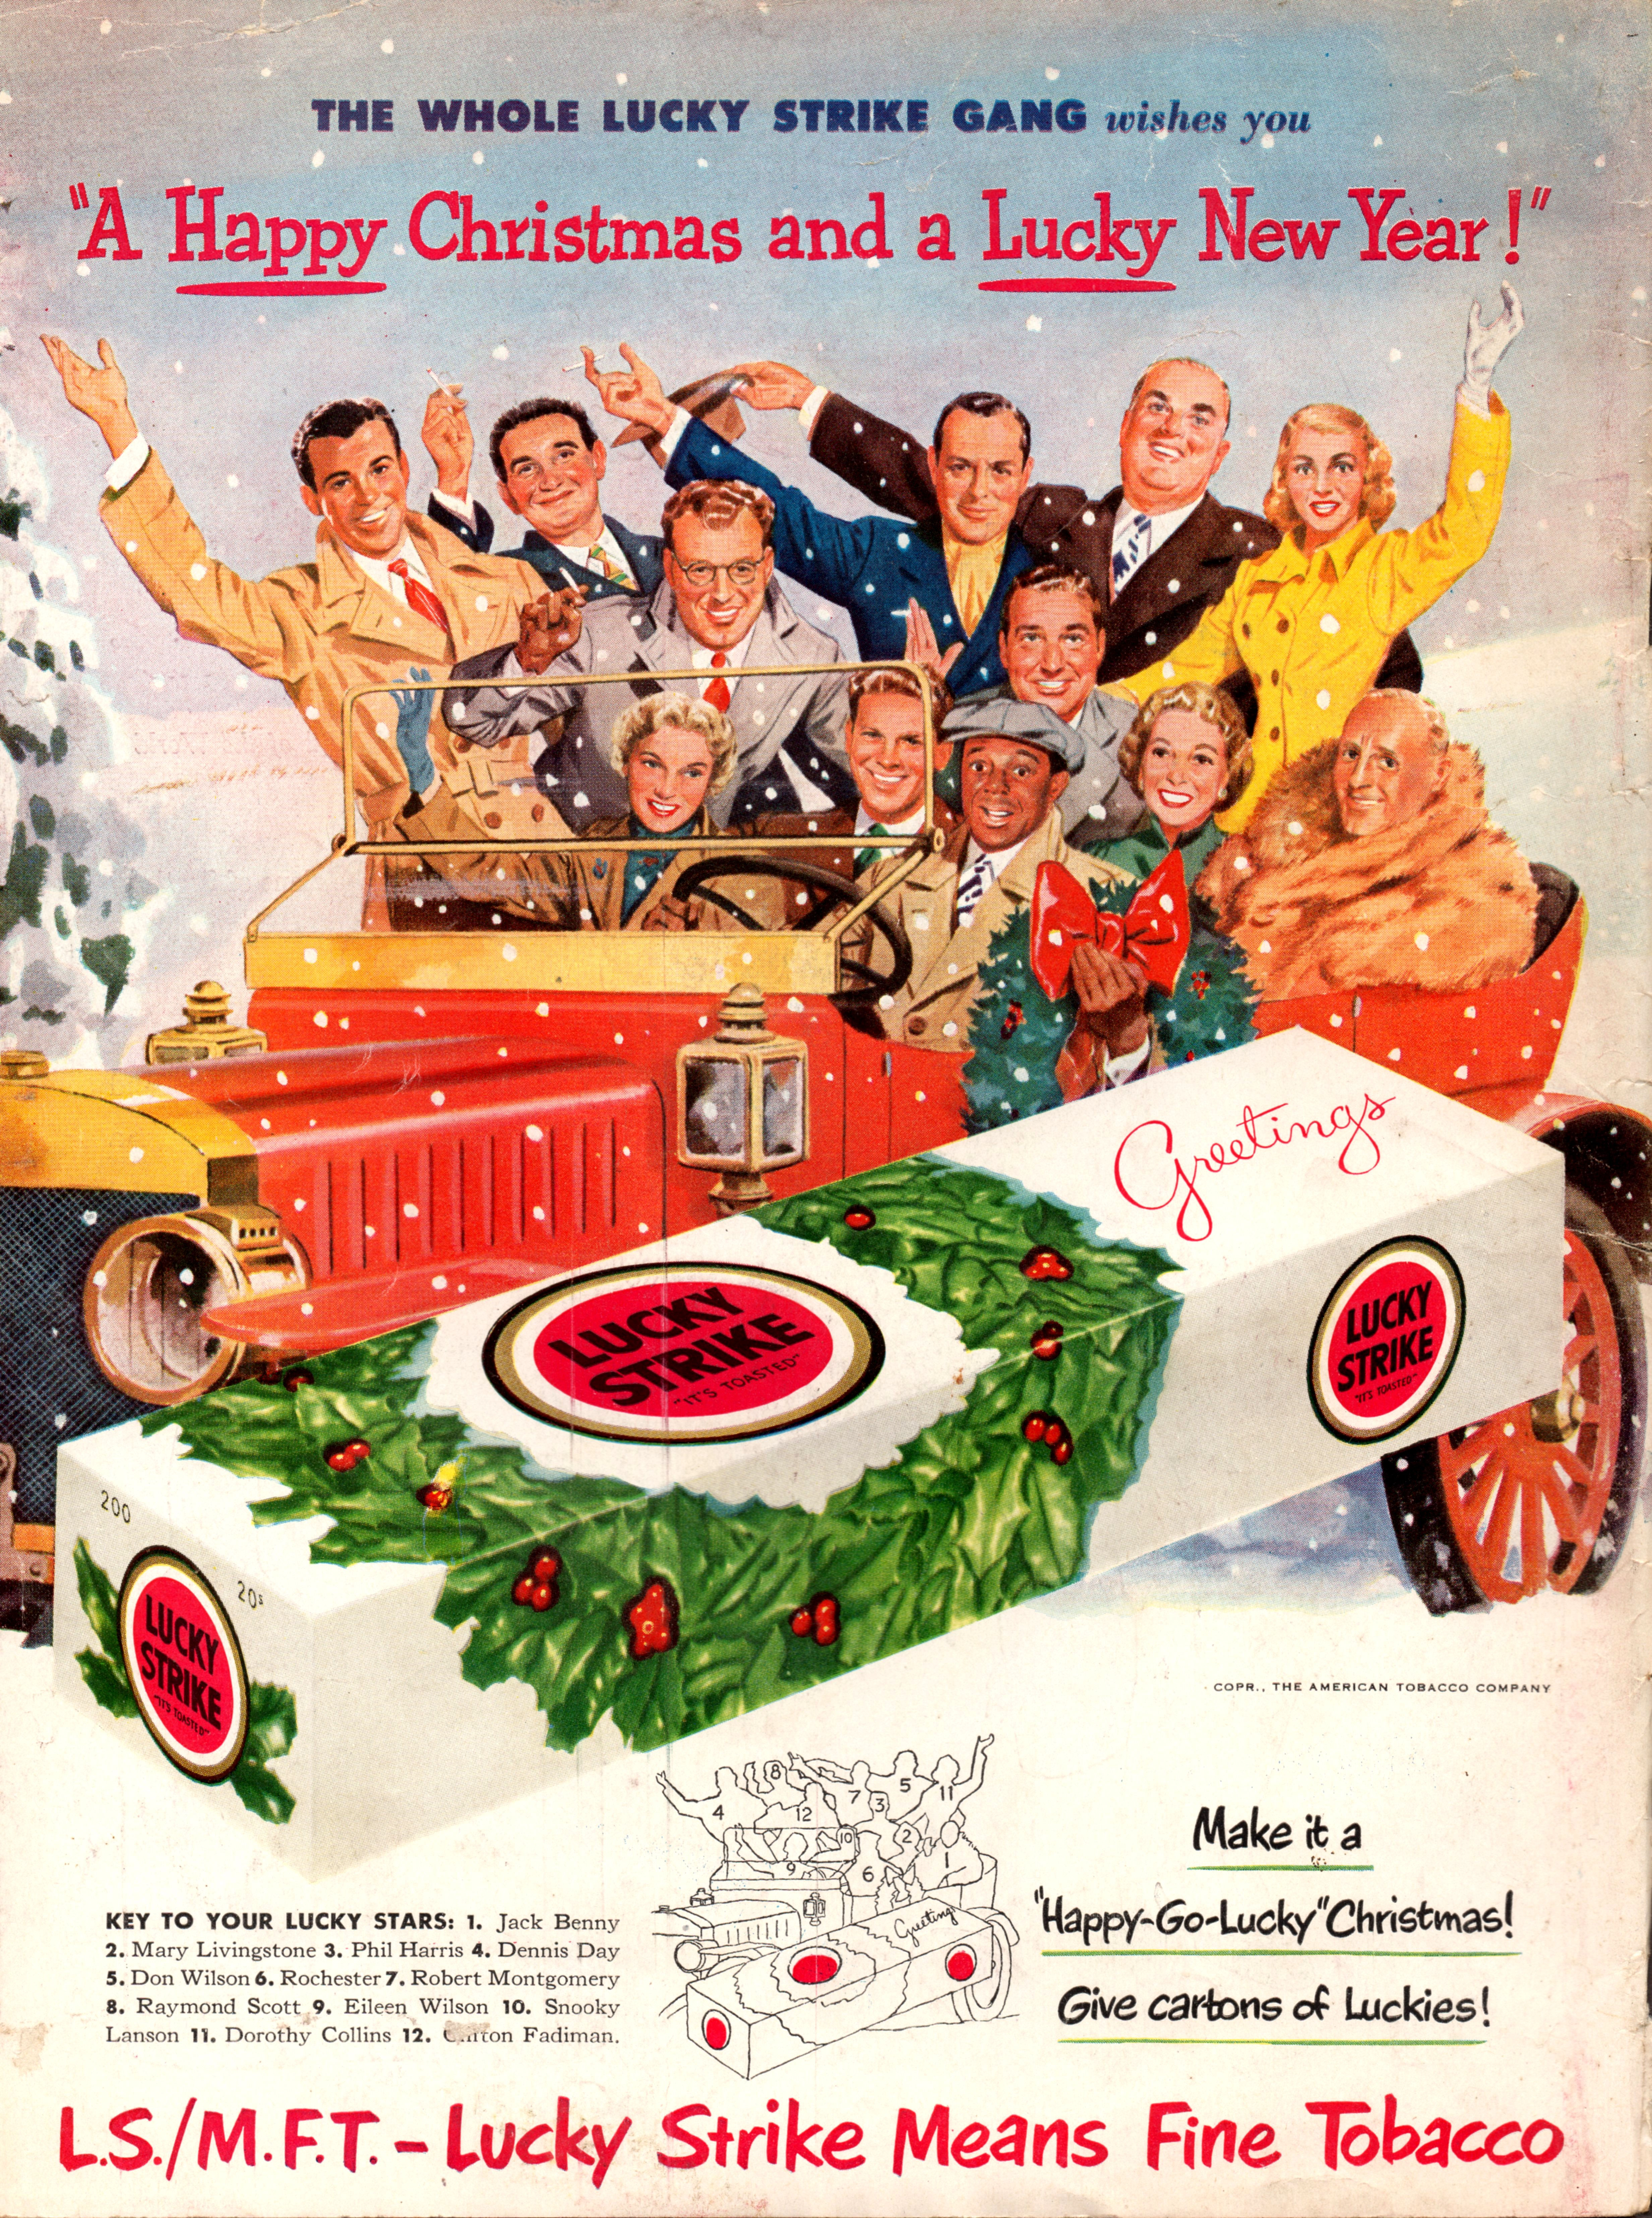 Lucky Strike featuring the cast of The Jack Benny Program - December 1950